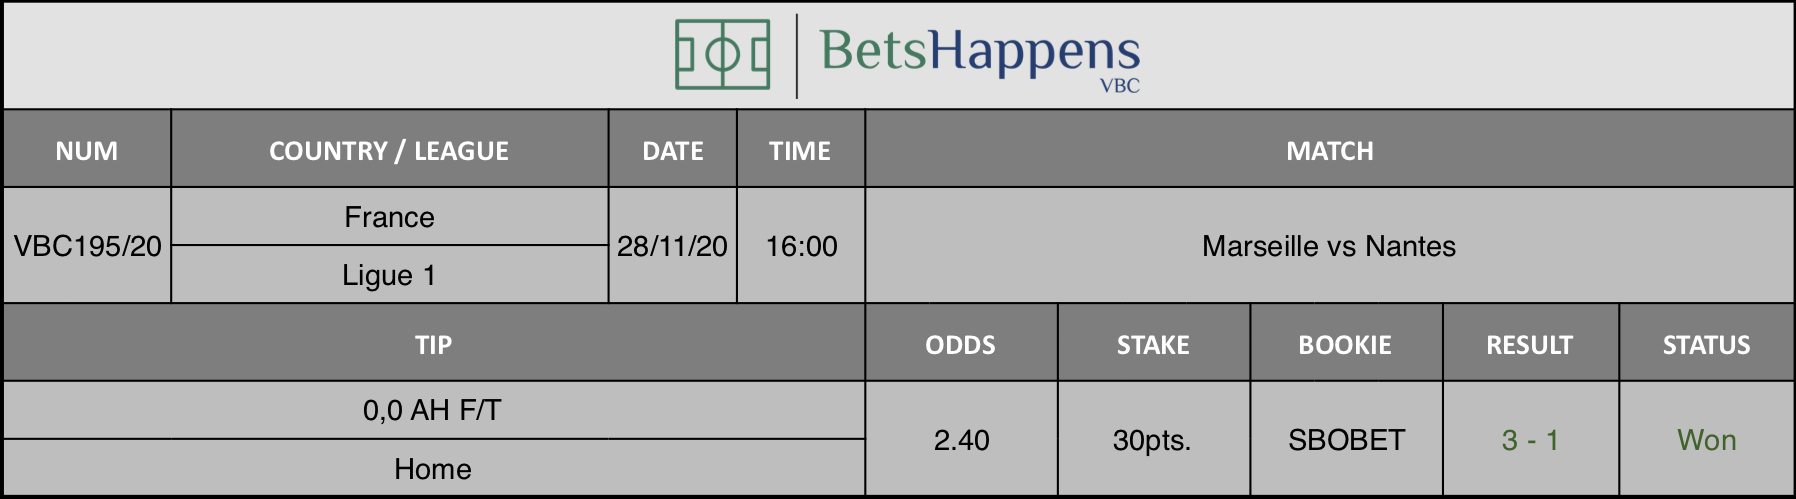 Results of our tip for the Marseille vs Nantes match where 0,0 AH F/T  Home is recommended.